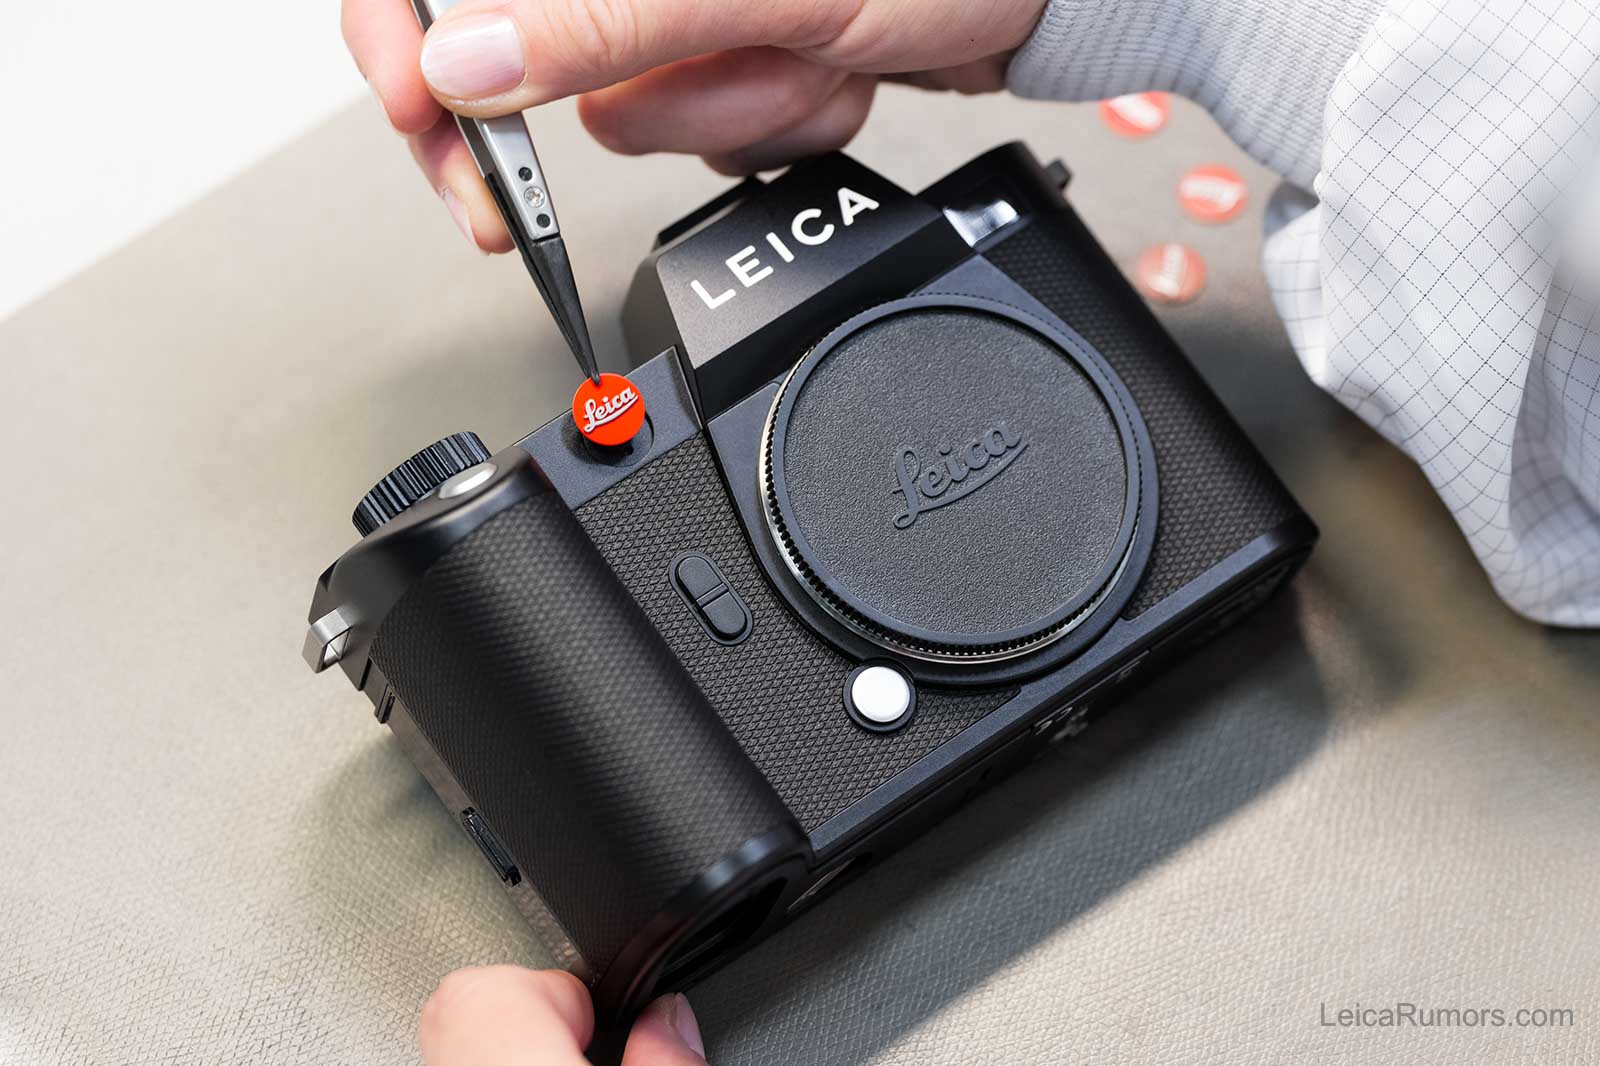 The making of the Leica SL2 camera in pictures - Leica Rumors